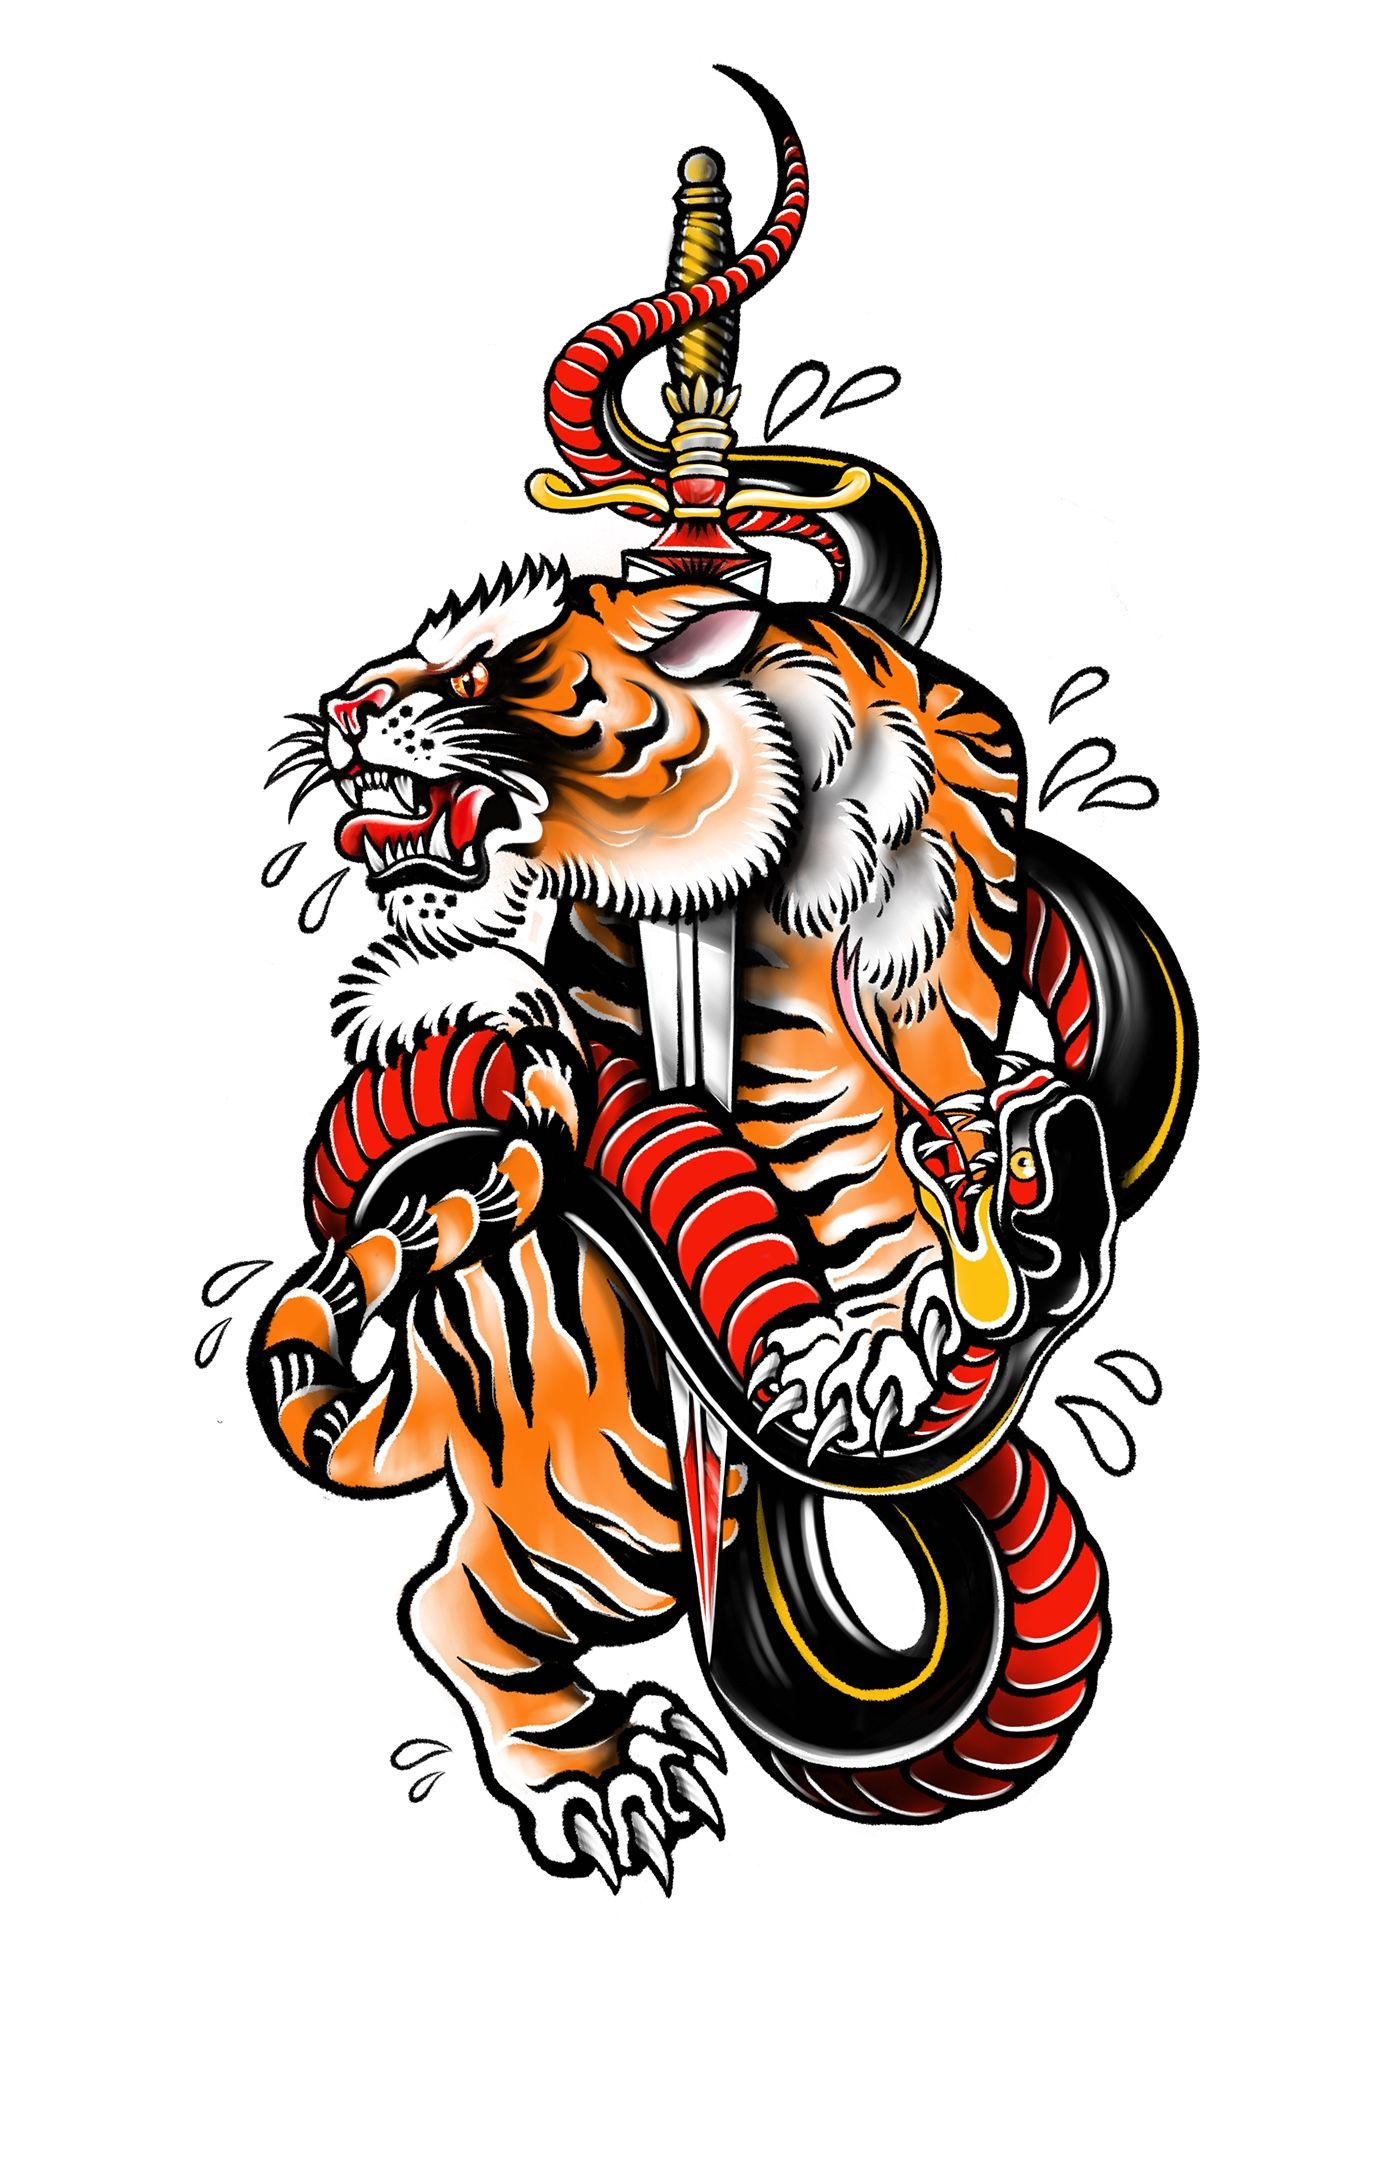 Traditional Tattoo On Behance Traditional Tiger Tattoo Traditional Tattoo Old School Tattoo Designs Tiger tattoo design wallpaper